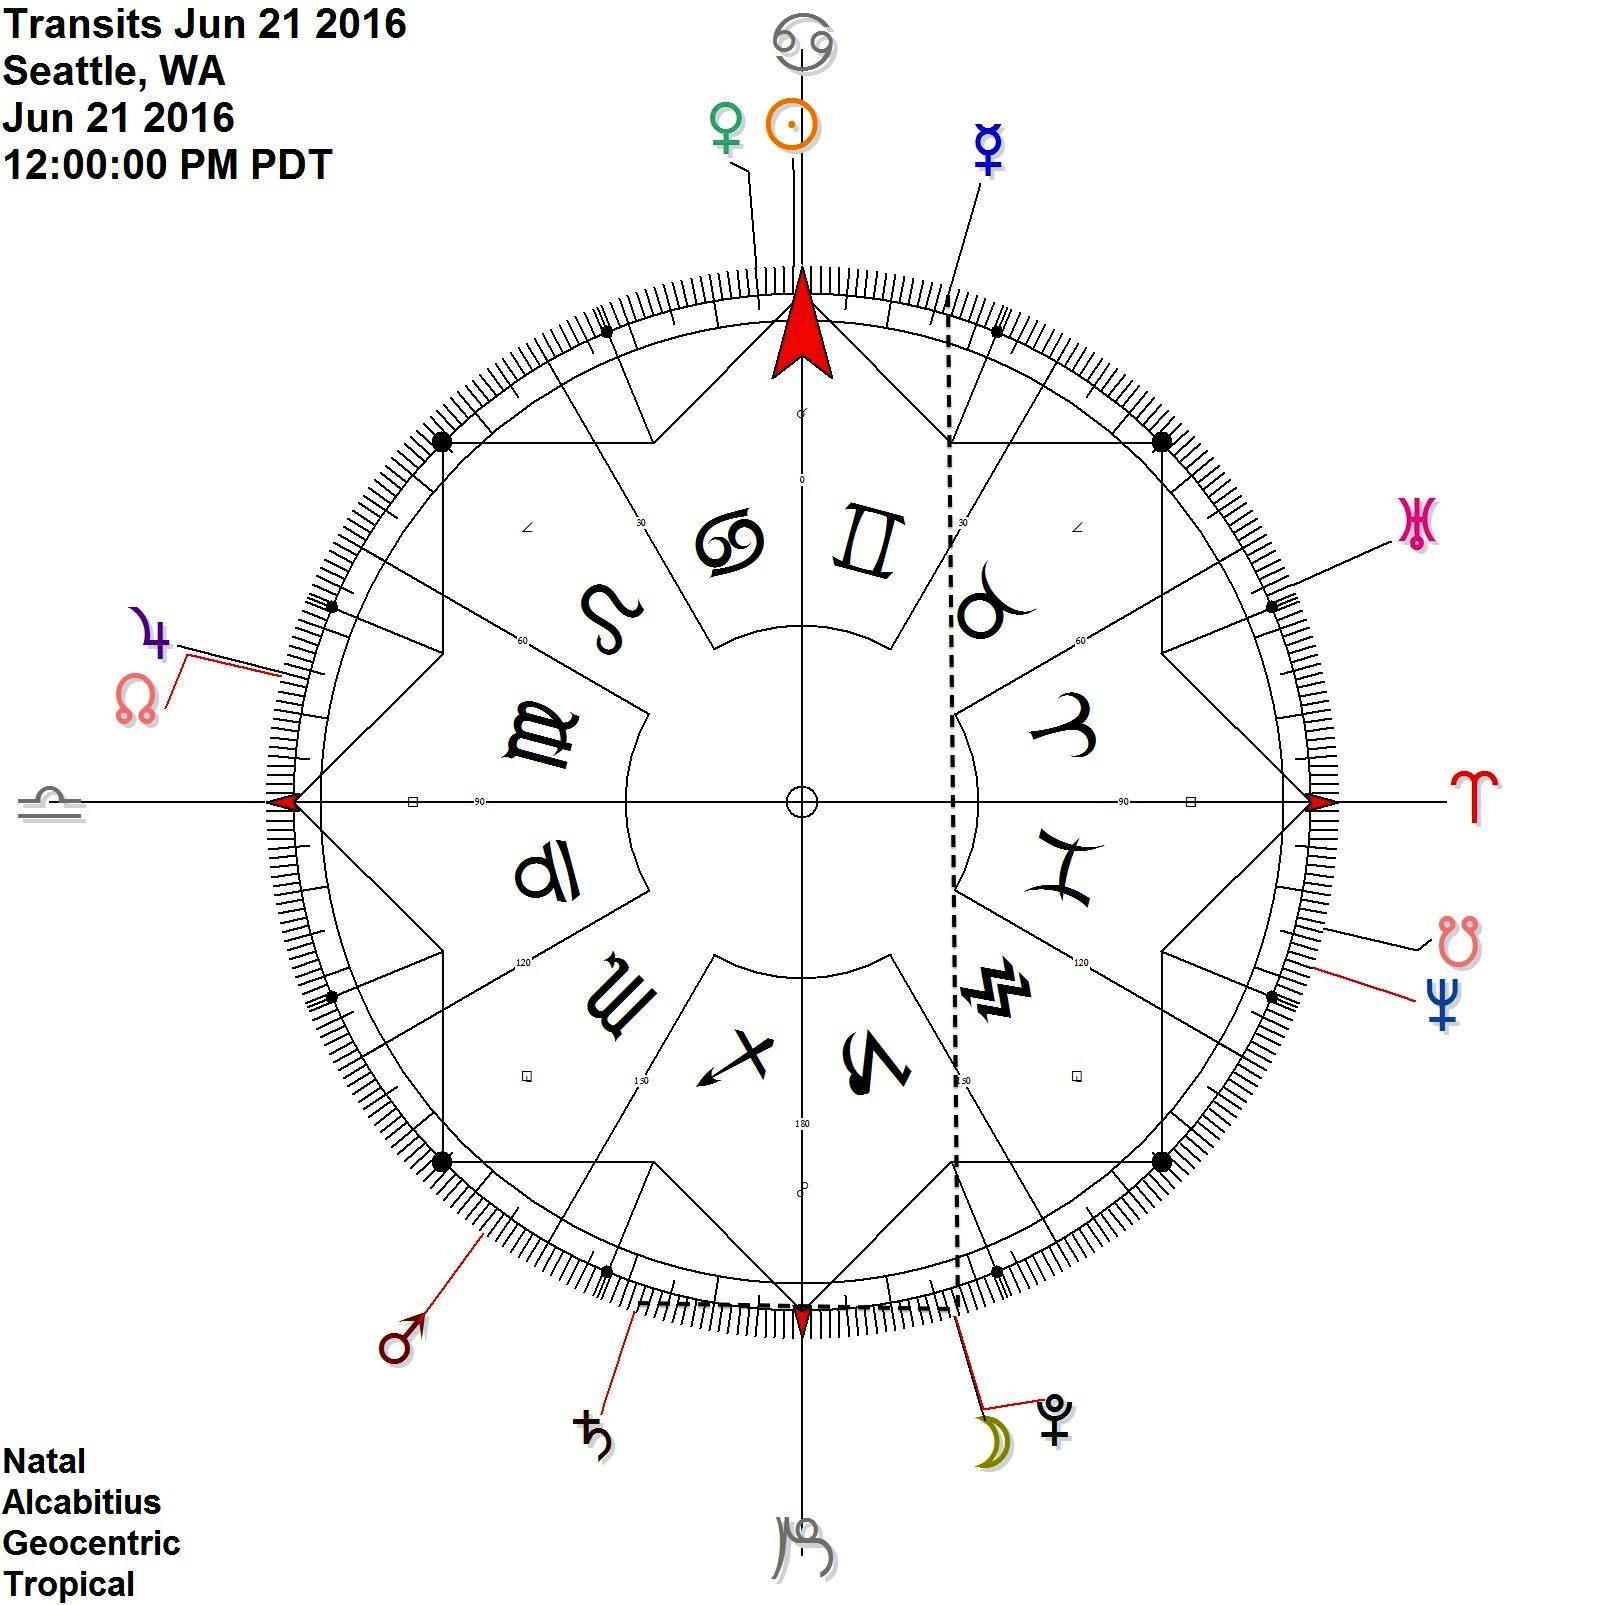 Moon meets up with Mercury Pluto in contra-antiscia + Saturn